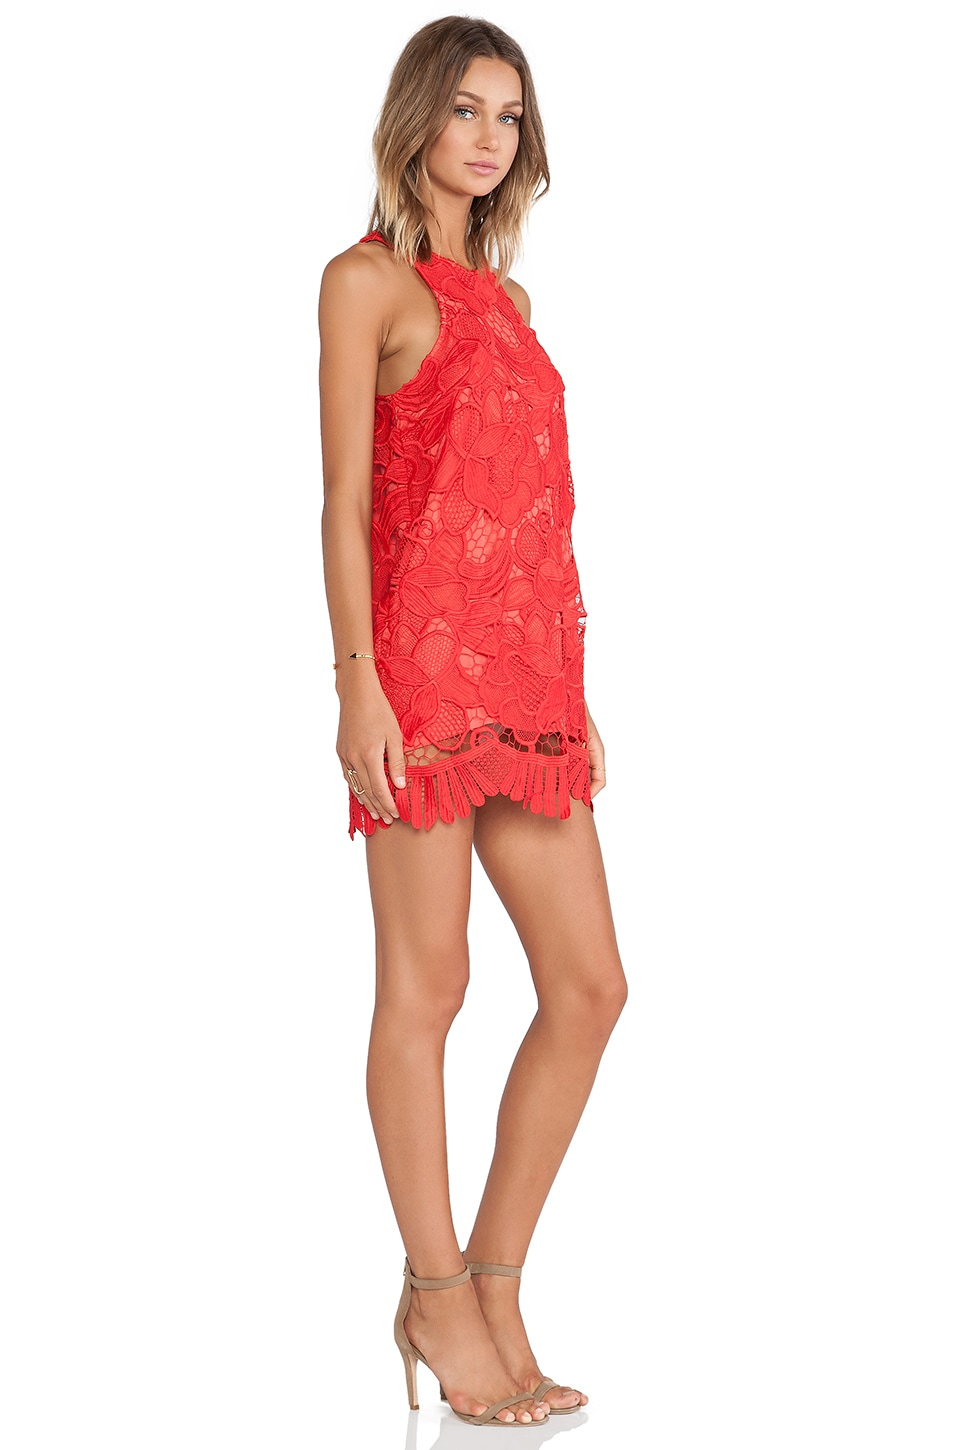 Caspian Shift Dress, view 2, click to view large image.